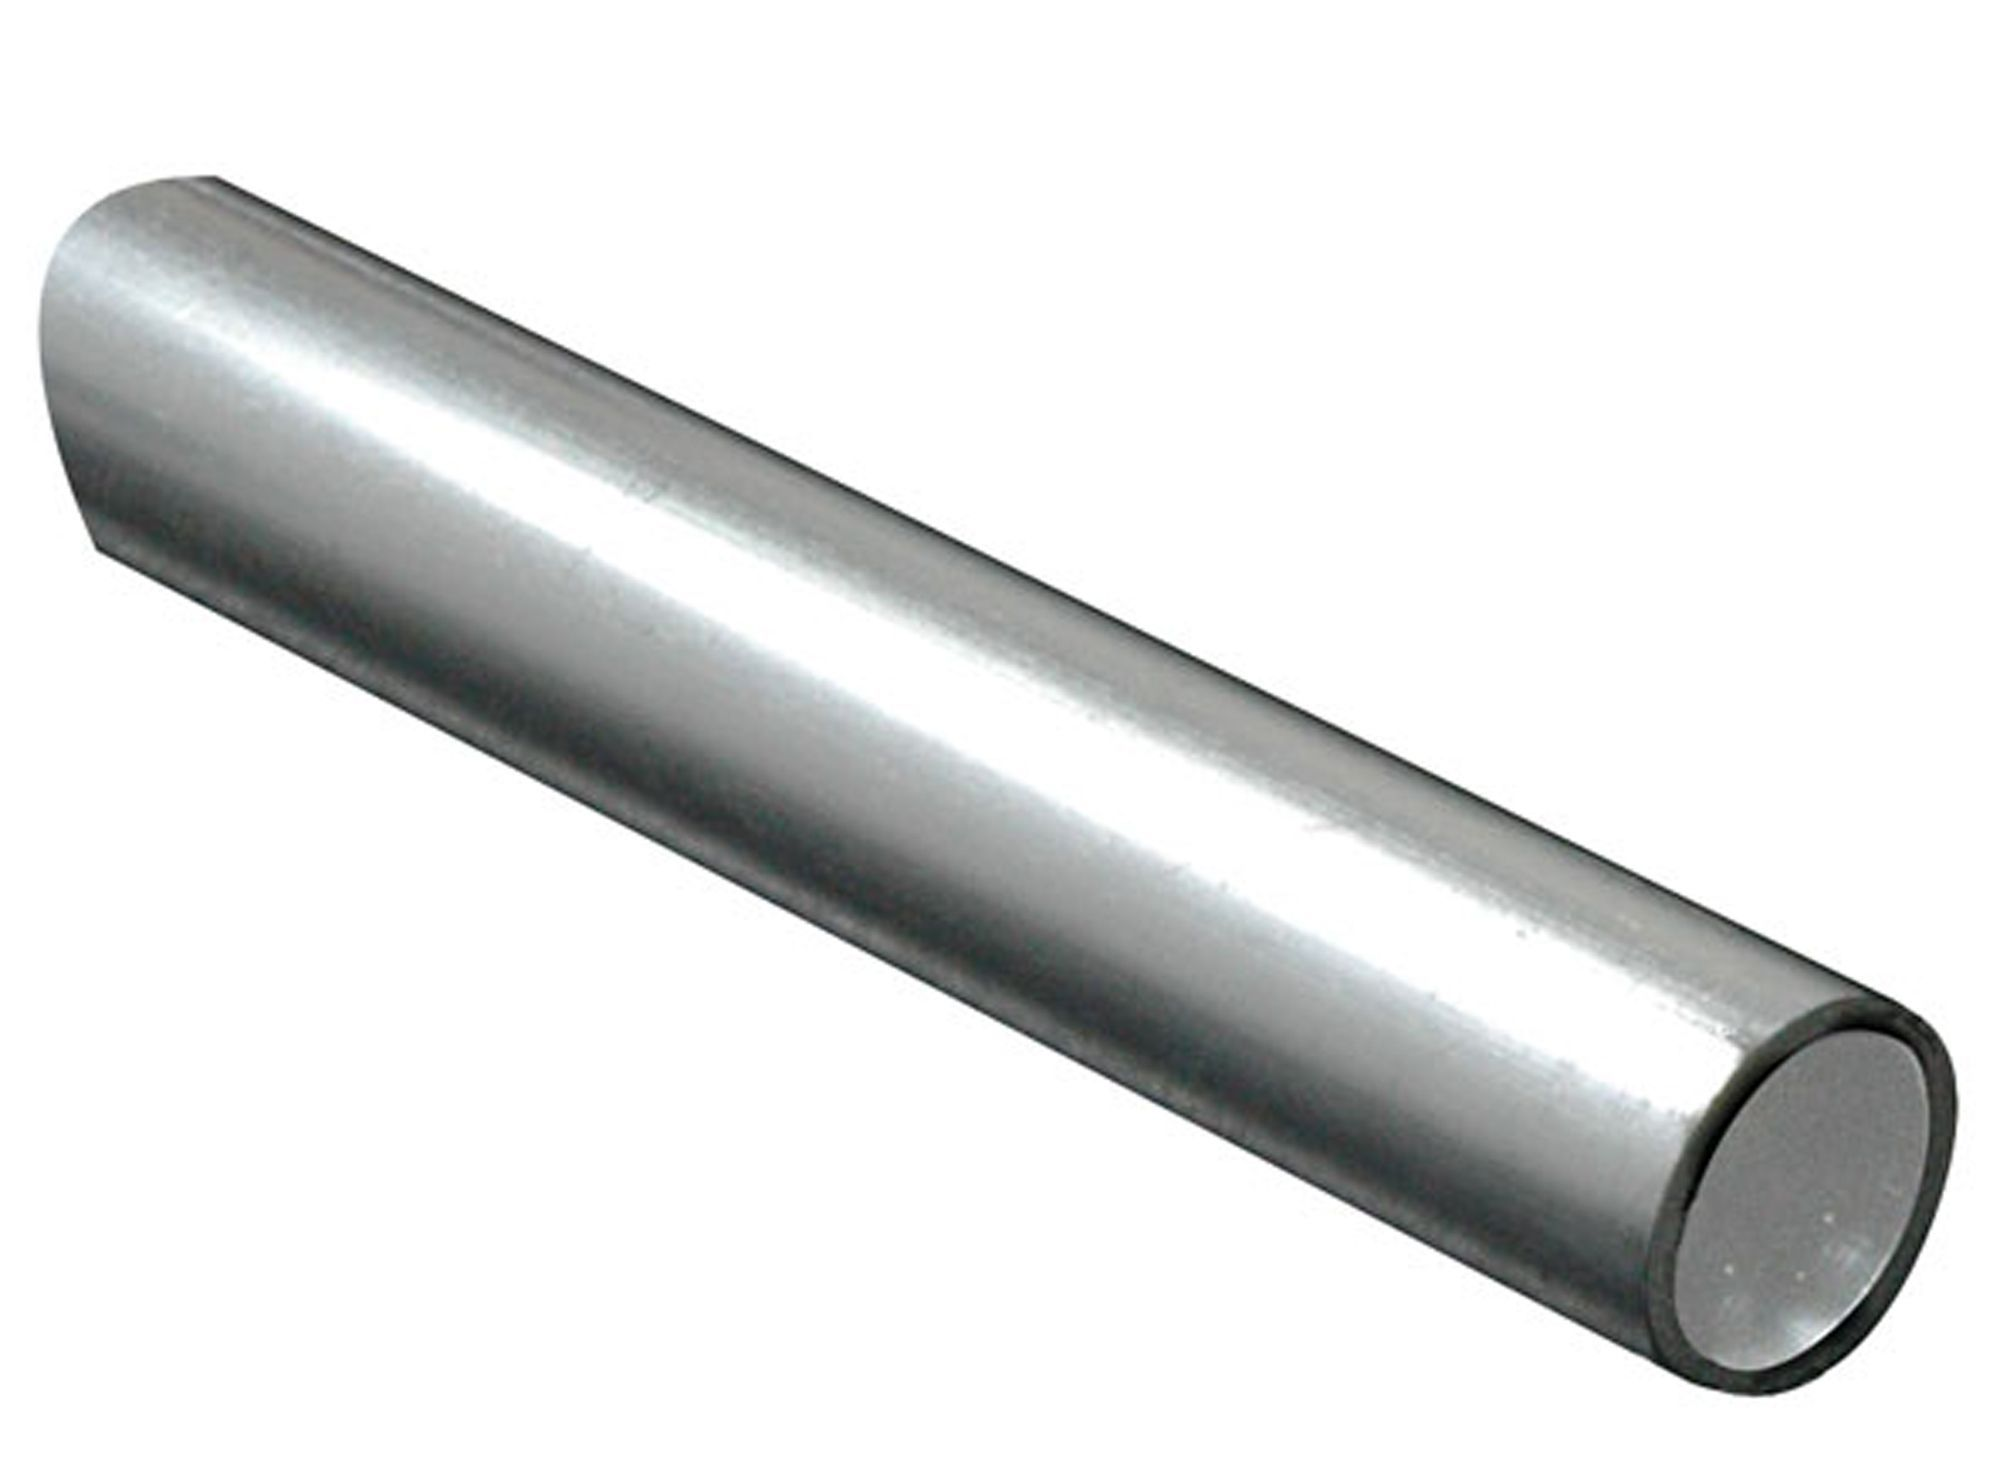 Ffa Concept Aluminium Round Tube L 1m Departments Diy